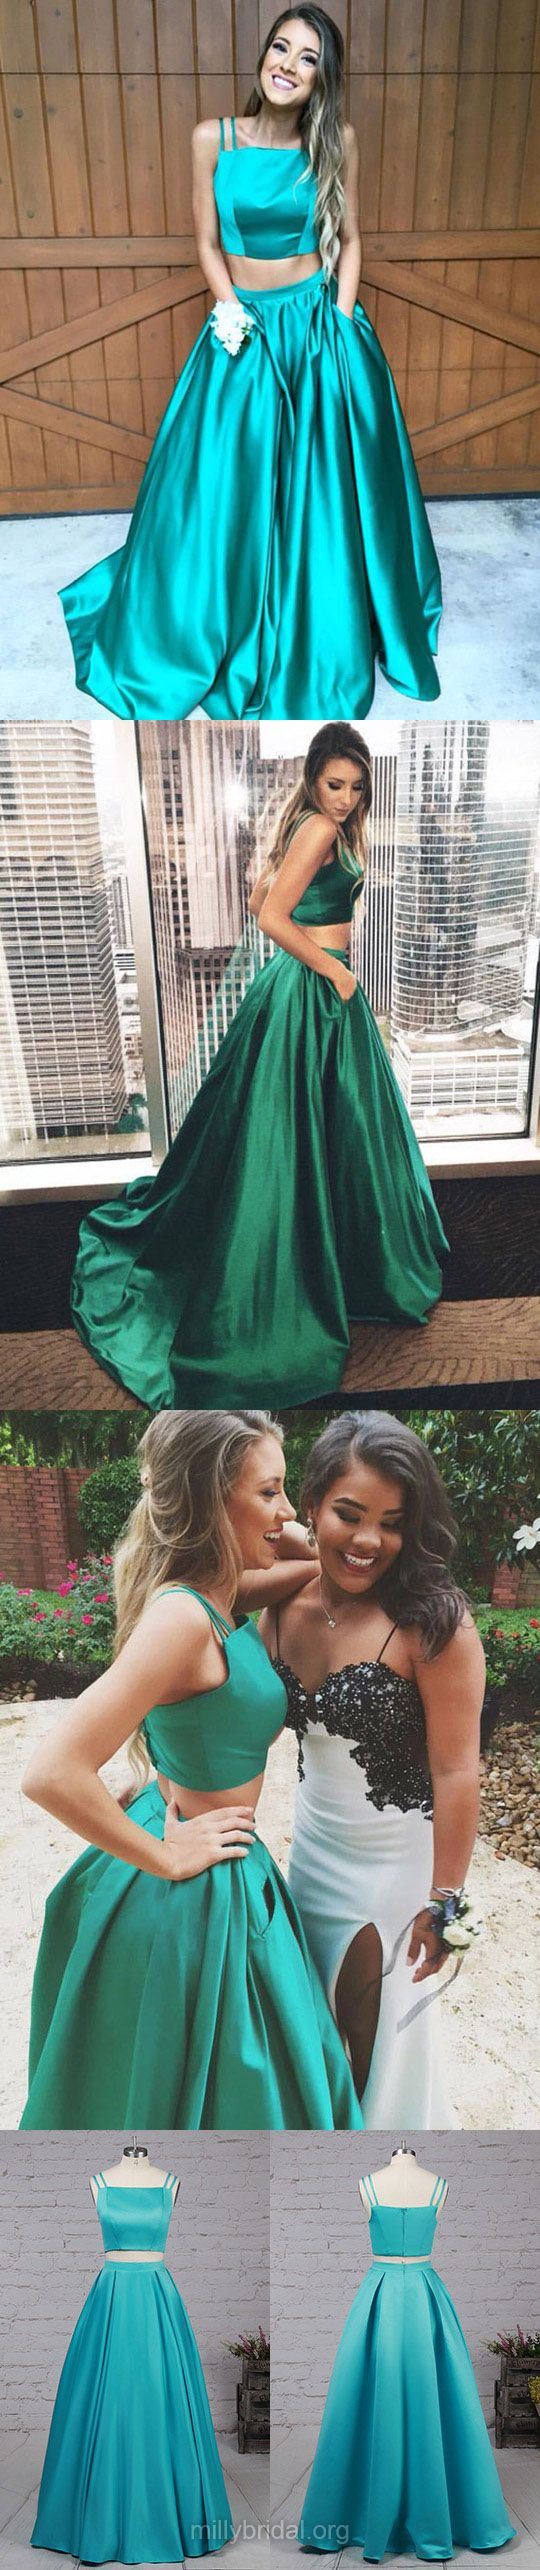 Pin by cansel chs on long prom dresses pinterest modest prom